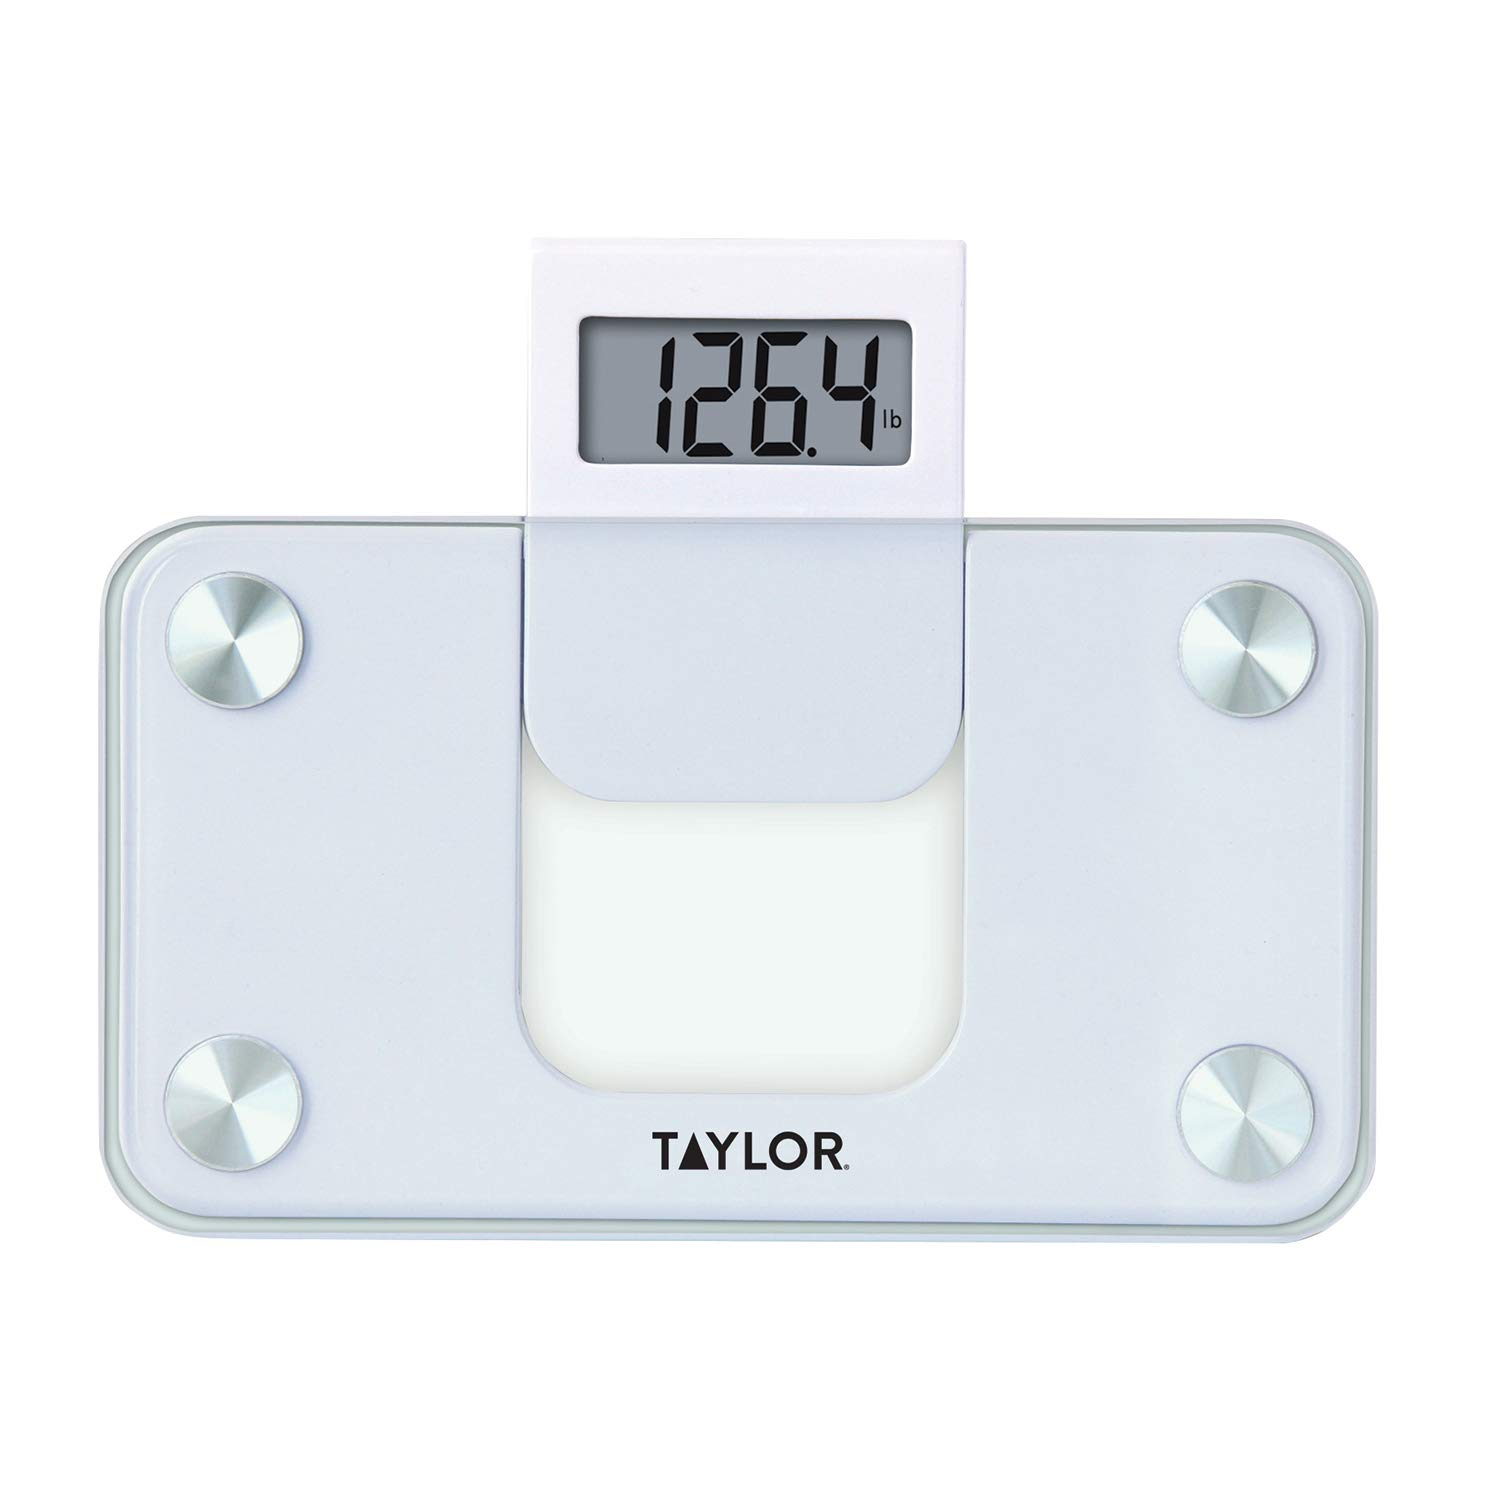 TAYLOR TAP708640134, Glass Digital Mini Scale with Telescope Display